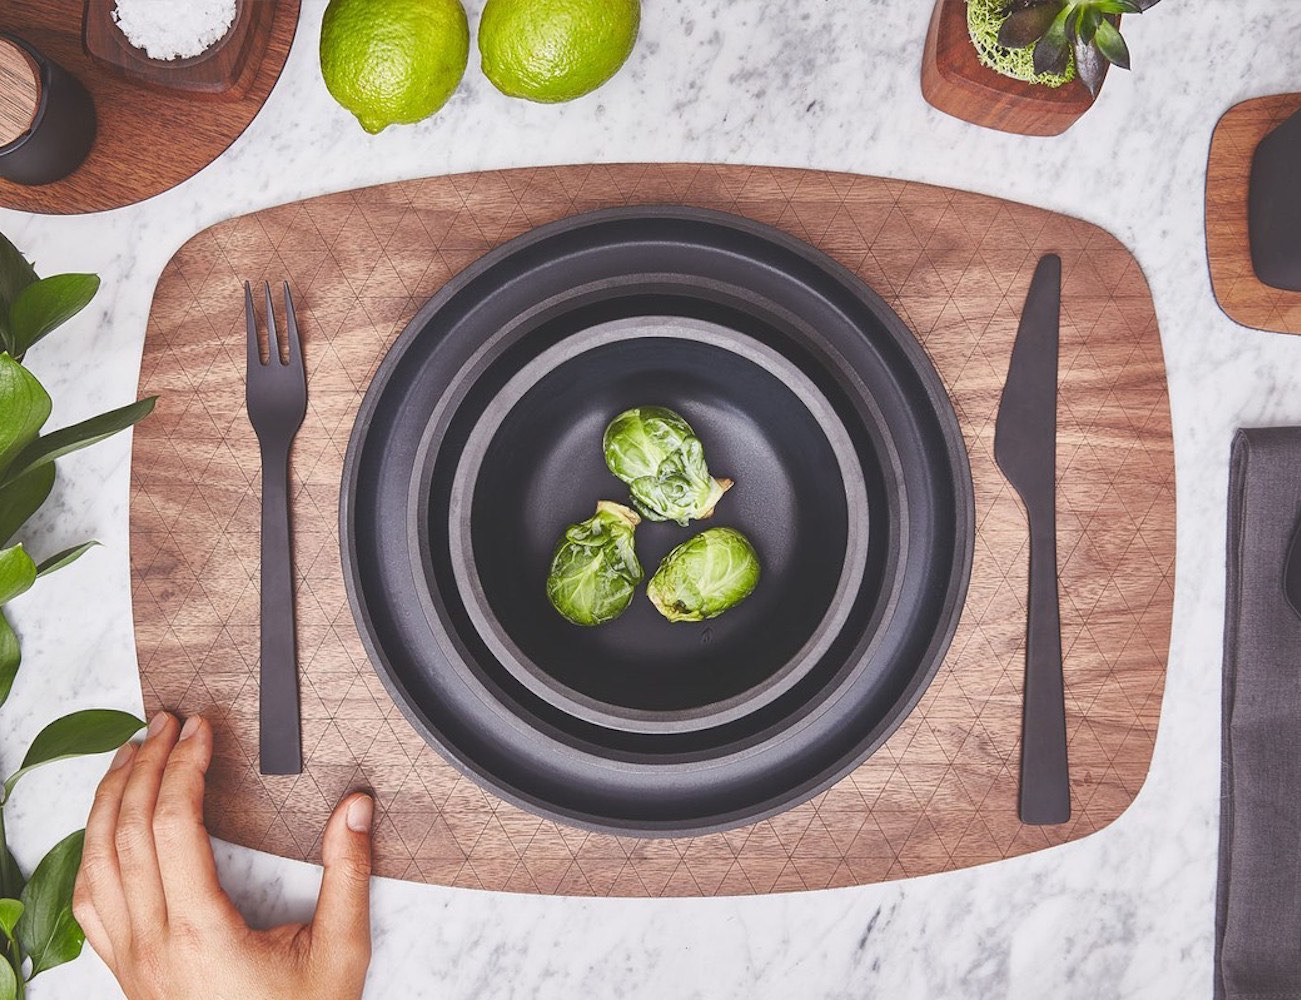 Walnut Placemat by Grovemade – With a Hand-Sanded Finish